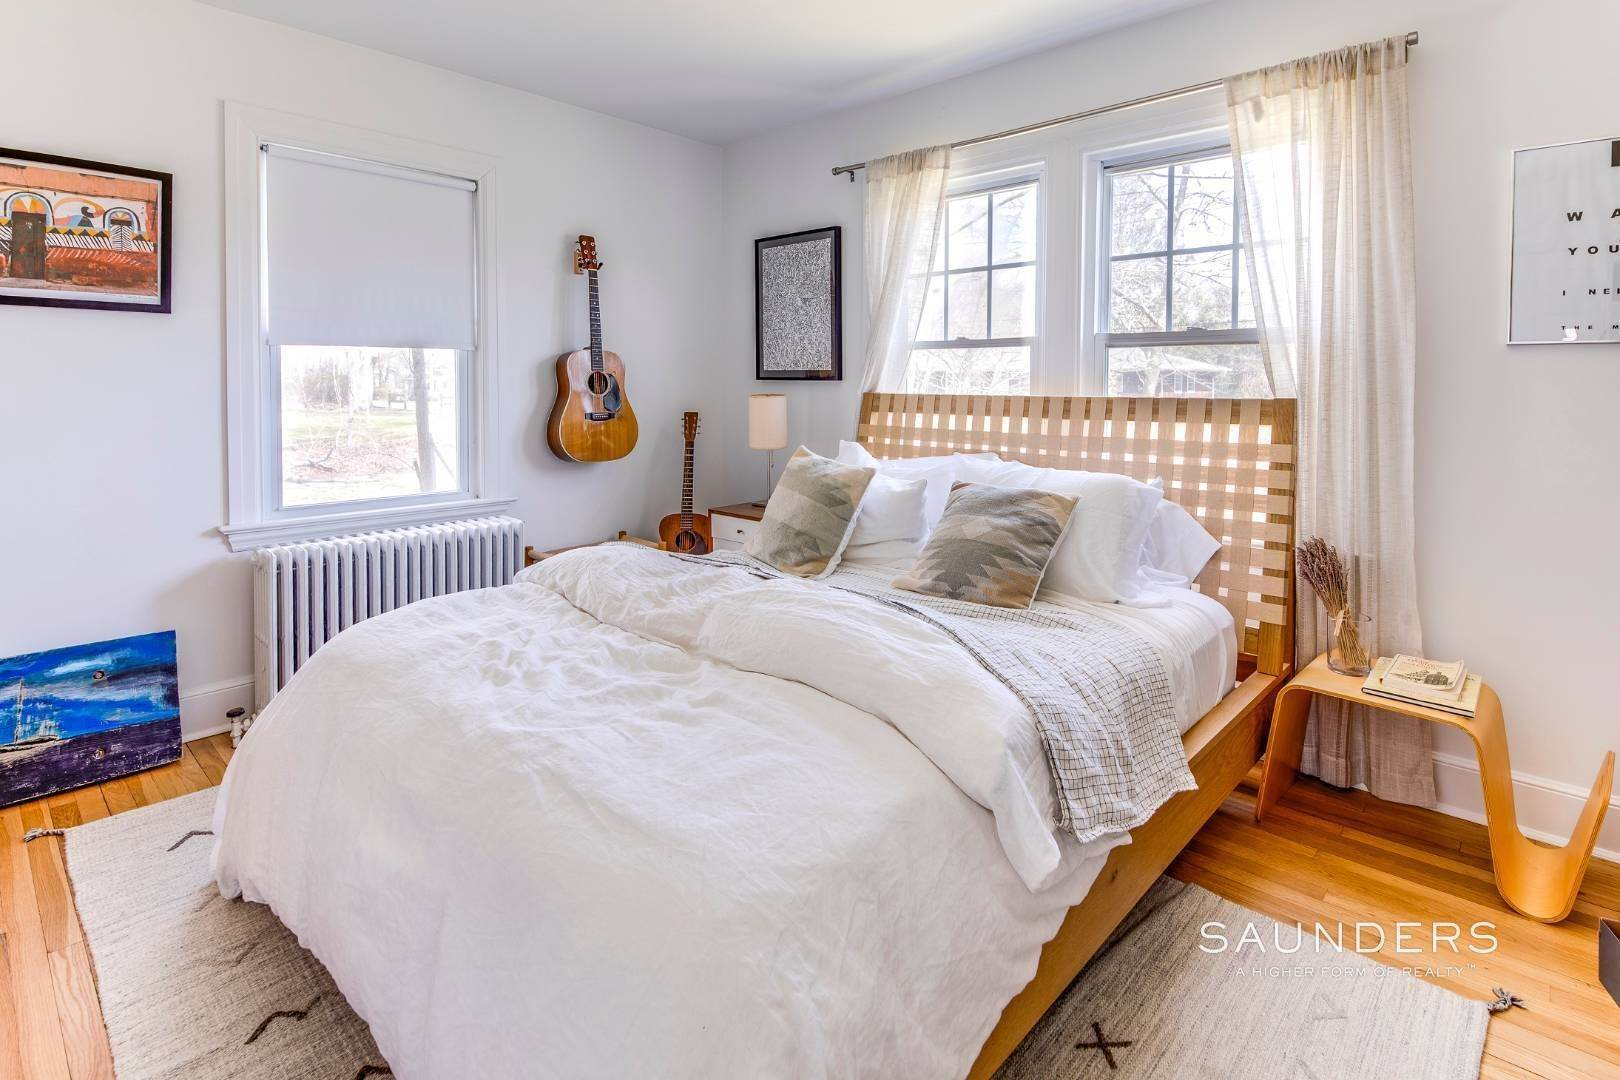 10. Single Family Homes for Sale at East Hampton Cottage On 1.17 Acres 43 Miller Lane West, East Hampton, East Hampton Town, NY 11937